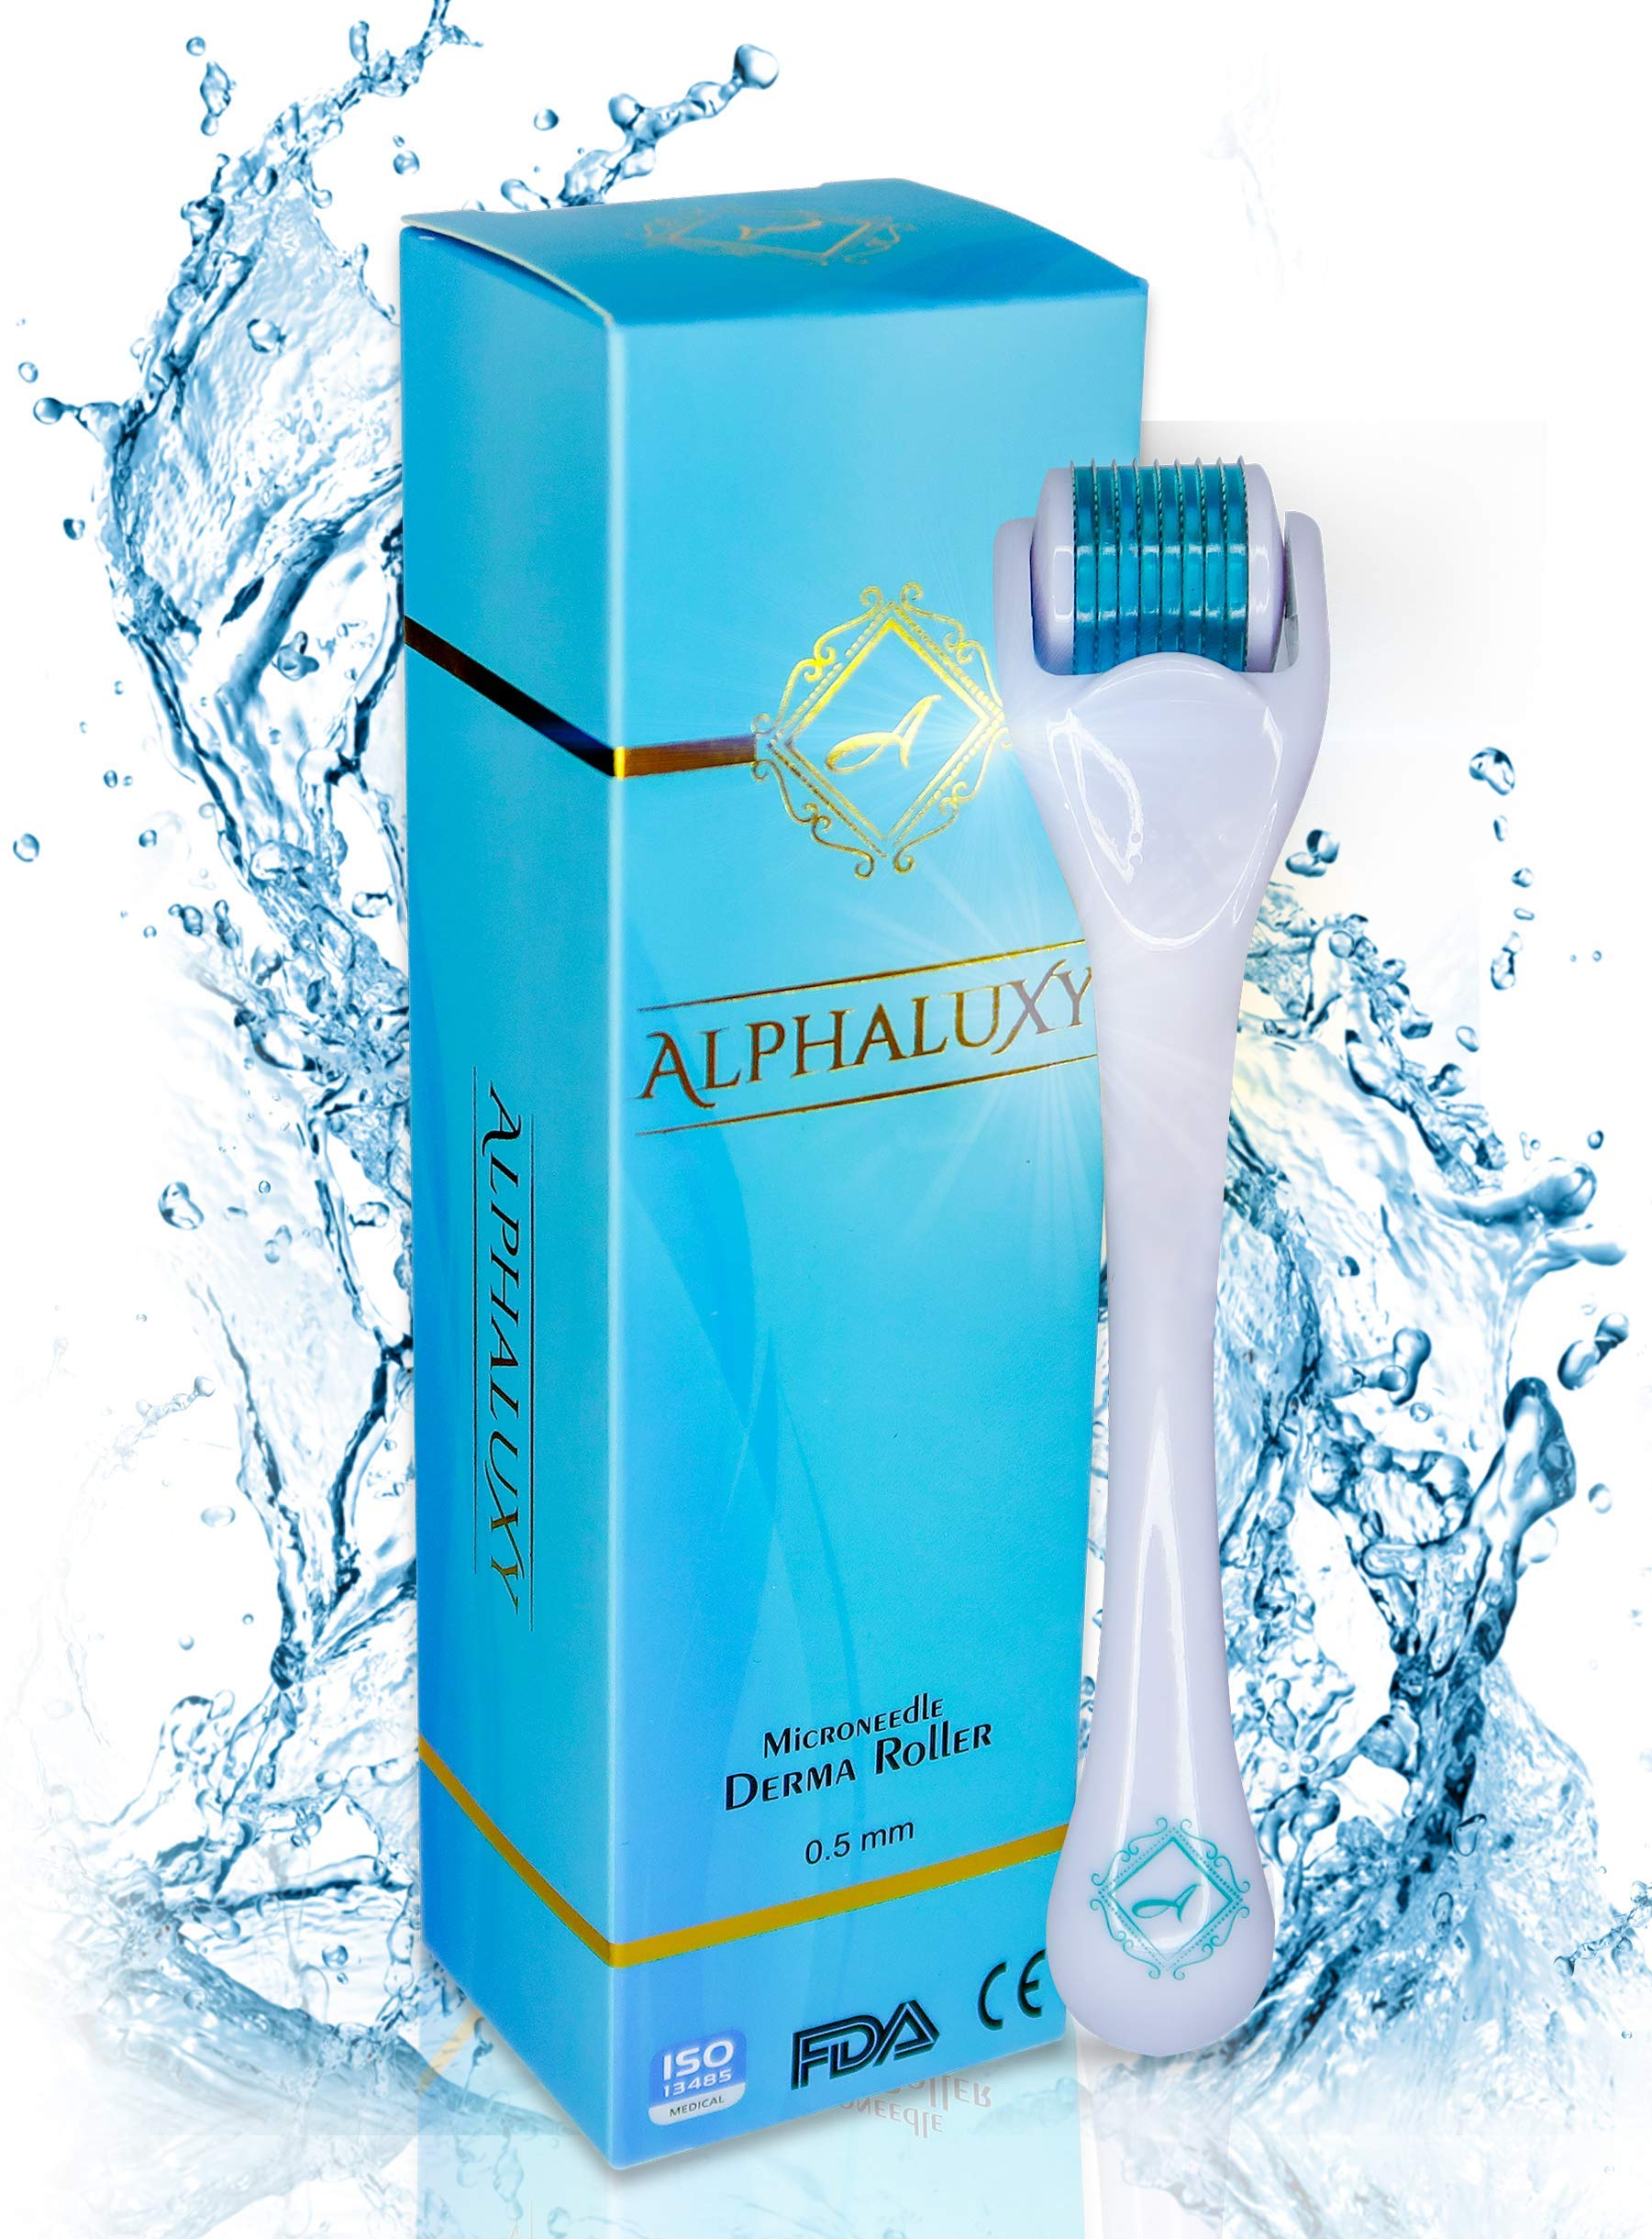 ALPHALUXY Best 0.5mm Derma Roller for Hair & Beard Growth and Acne Scar Treatment | Professional Titanium 540 Needles Microneedle Dermaroller | Extensive Instructions & Free Ebook + Full Warranty